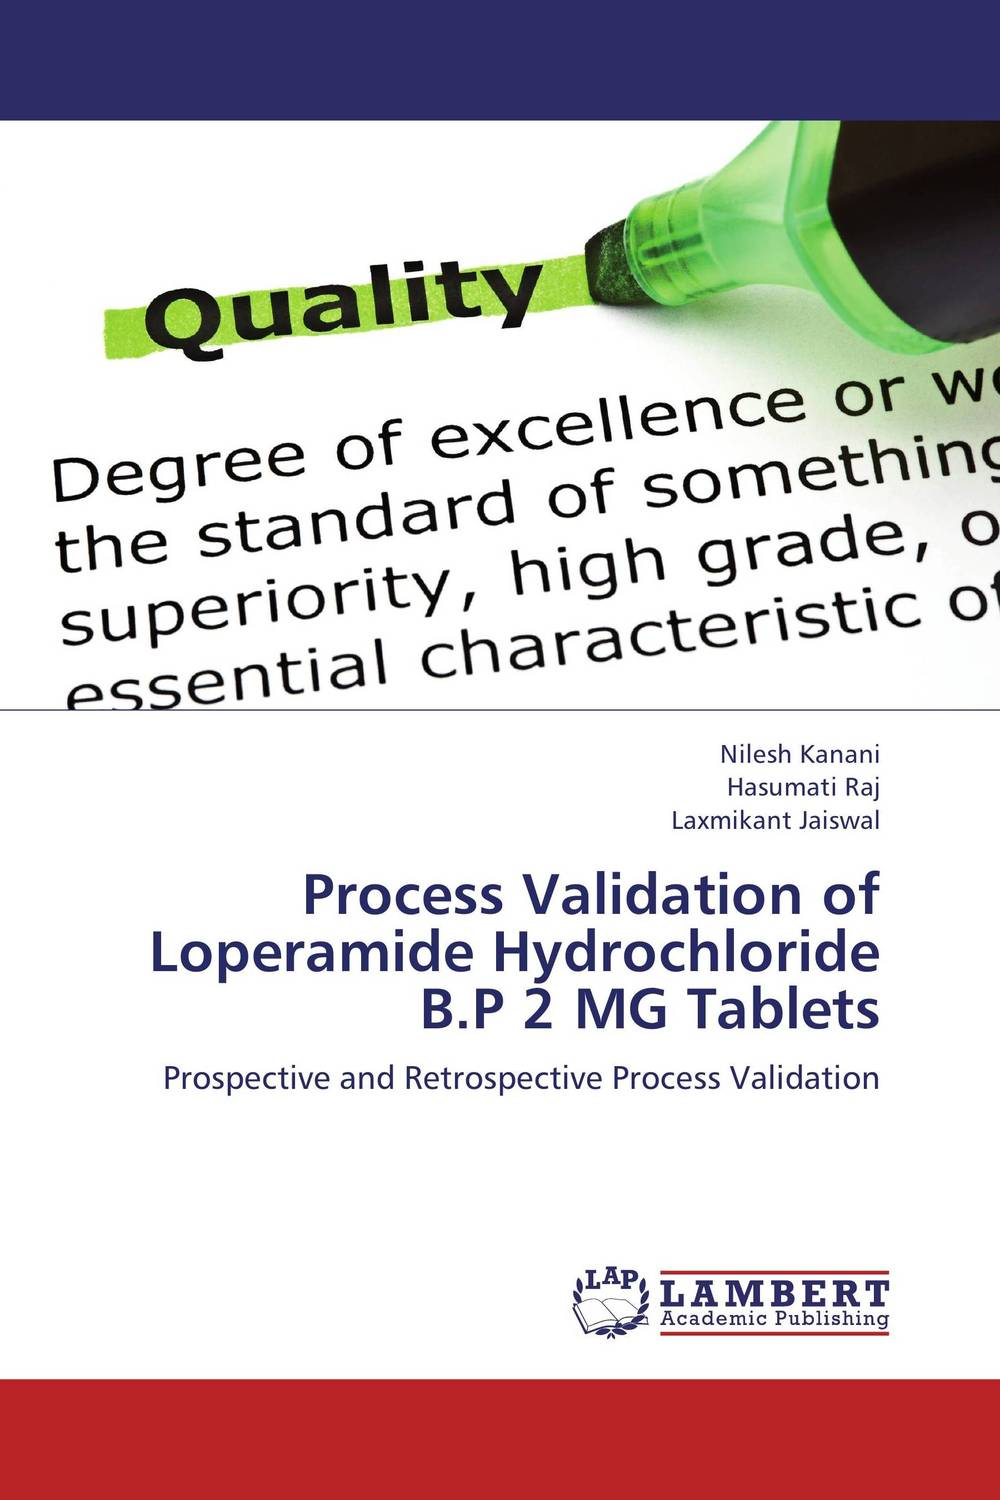 Process Validation of Loperamide Hydrochloride B.P 2 MG Tablets gulliver игр мягкая кролик коричневый 40см 7 42045